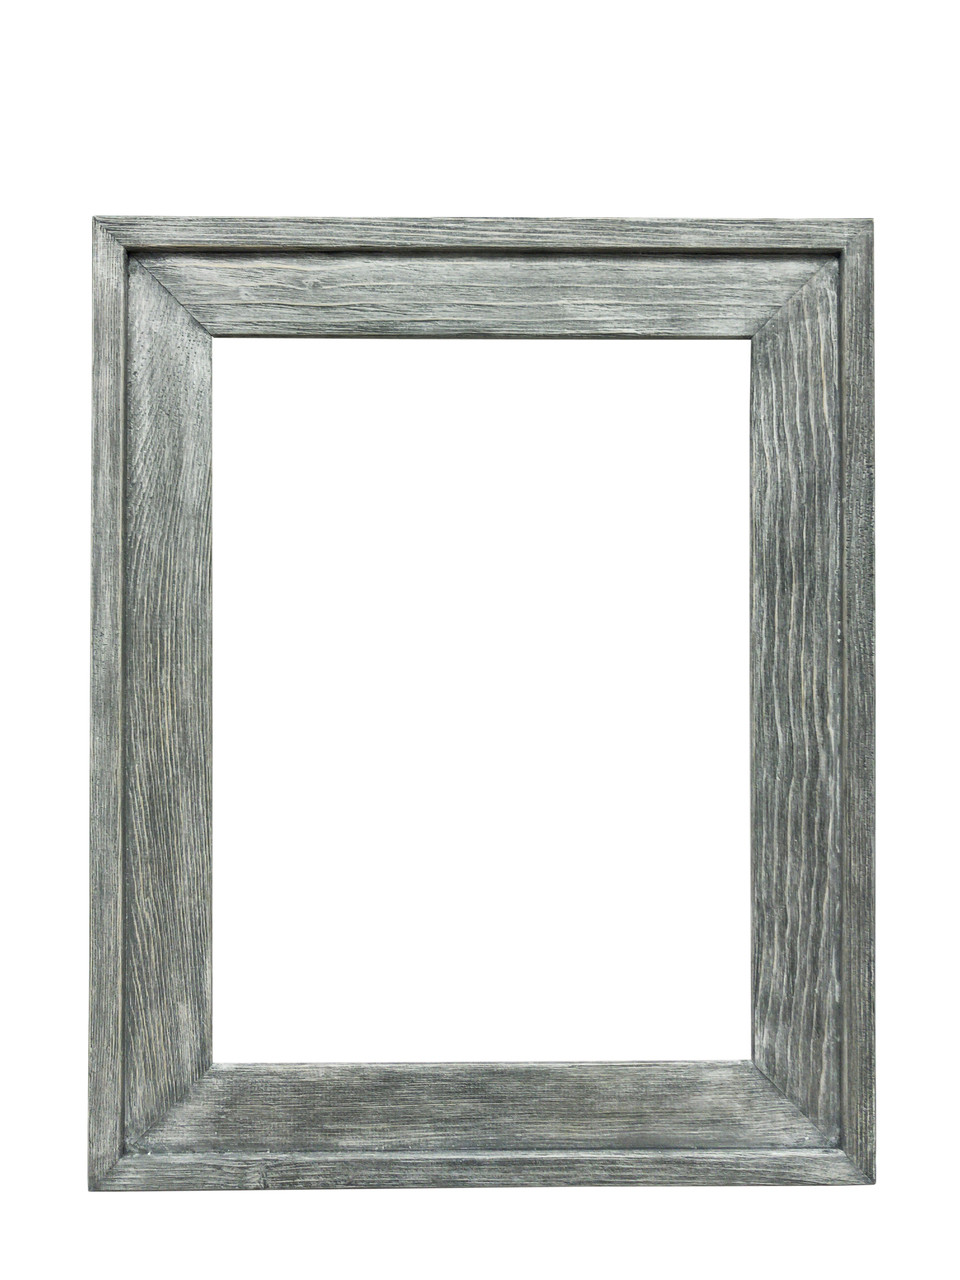 2-5-8-rustic-barnwood-distressed-wood-picture-frame